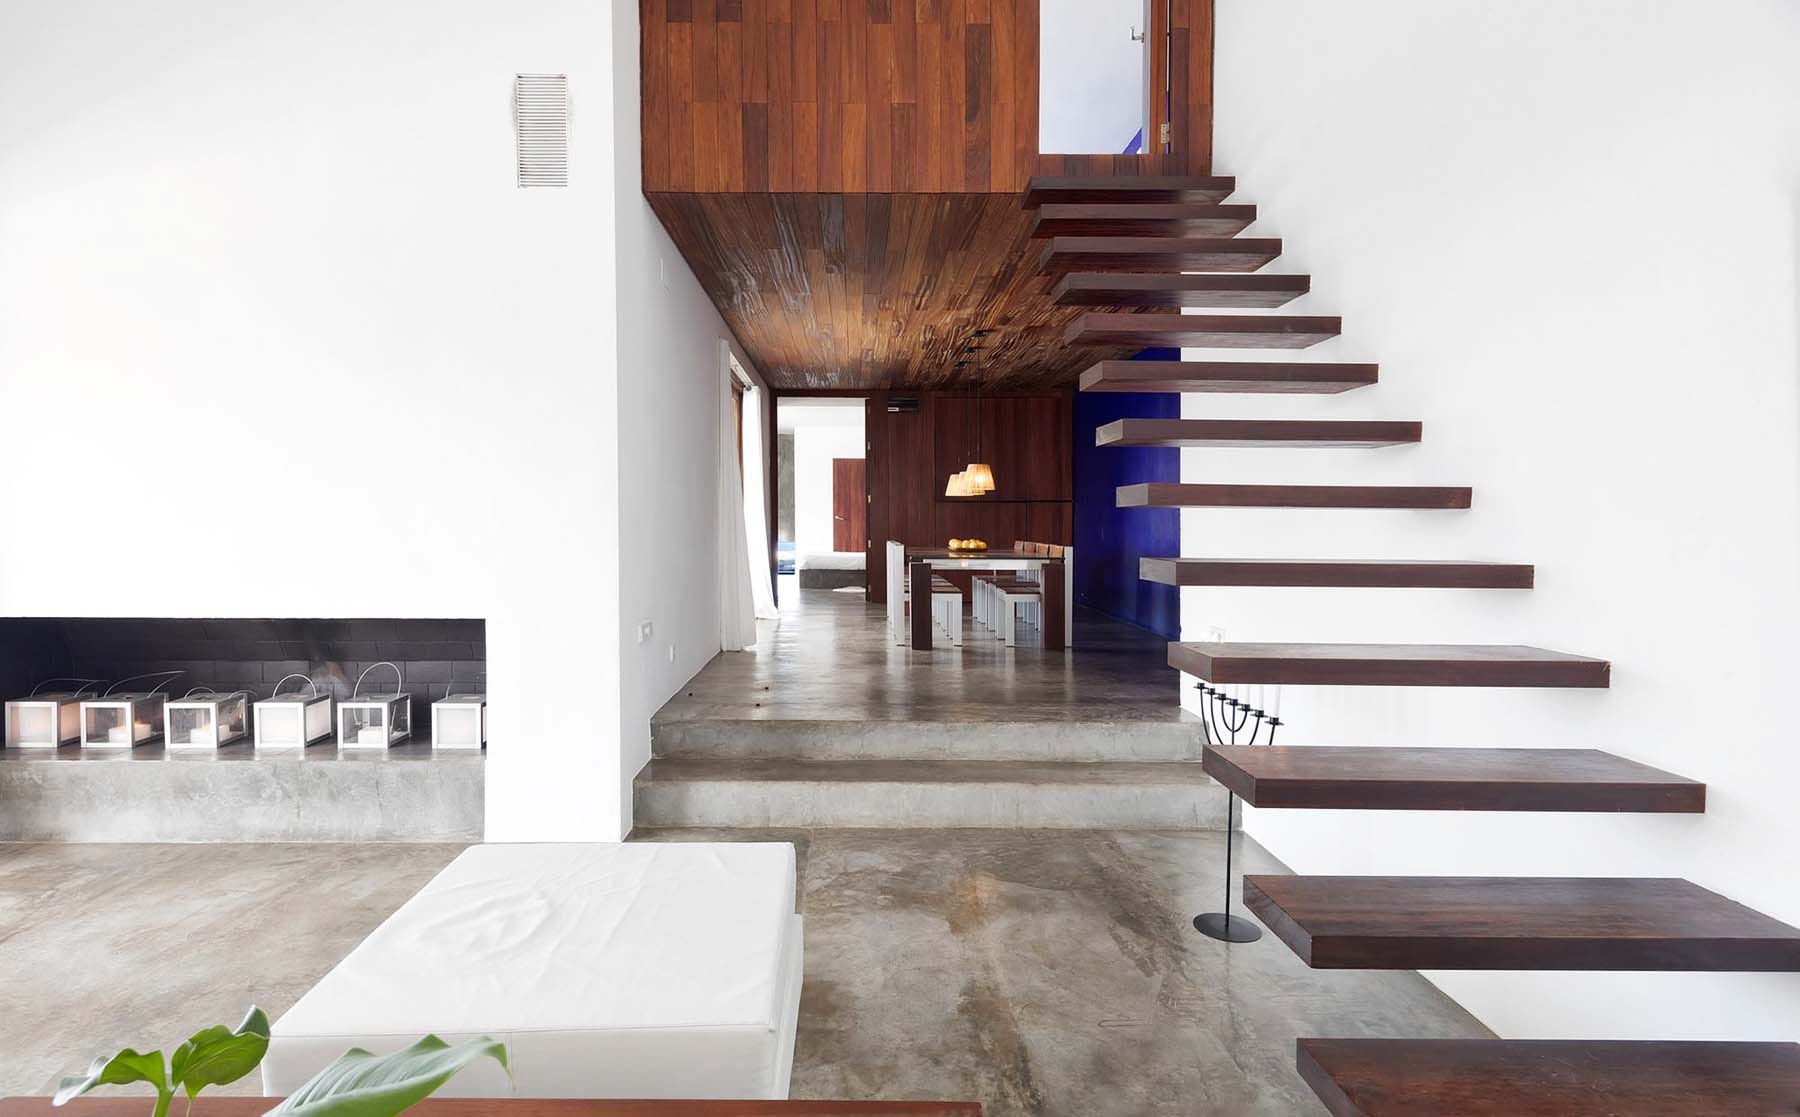 Stunning modern floating wood stairs with no railings. What a dangerous staircase design but at the same time very beautiful.